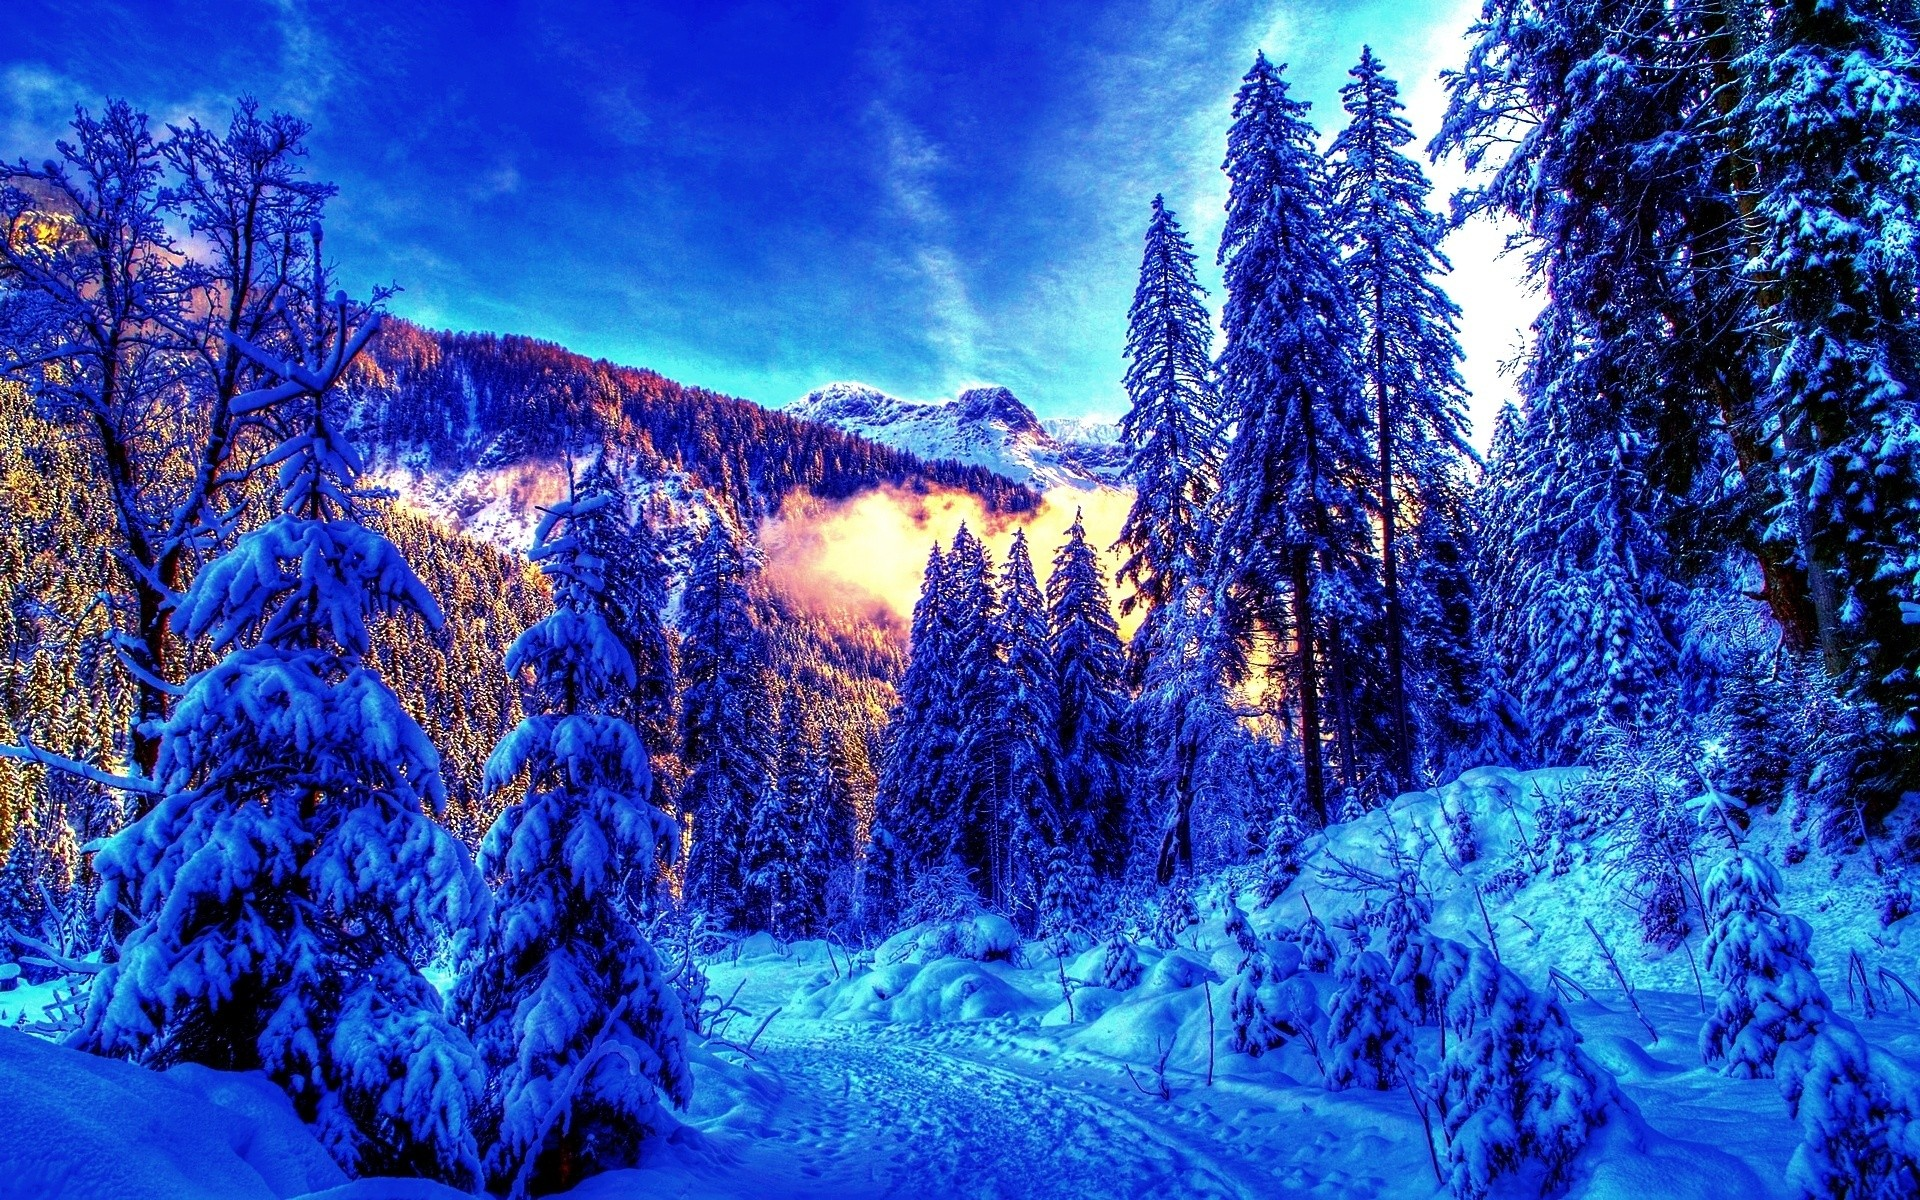 Snow Trees Wallpaper 1920x1200 Snow Trees Winter Landscapes HDR 1920x1200